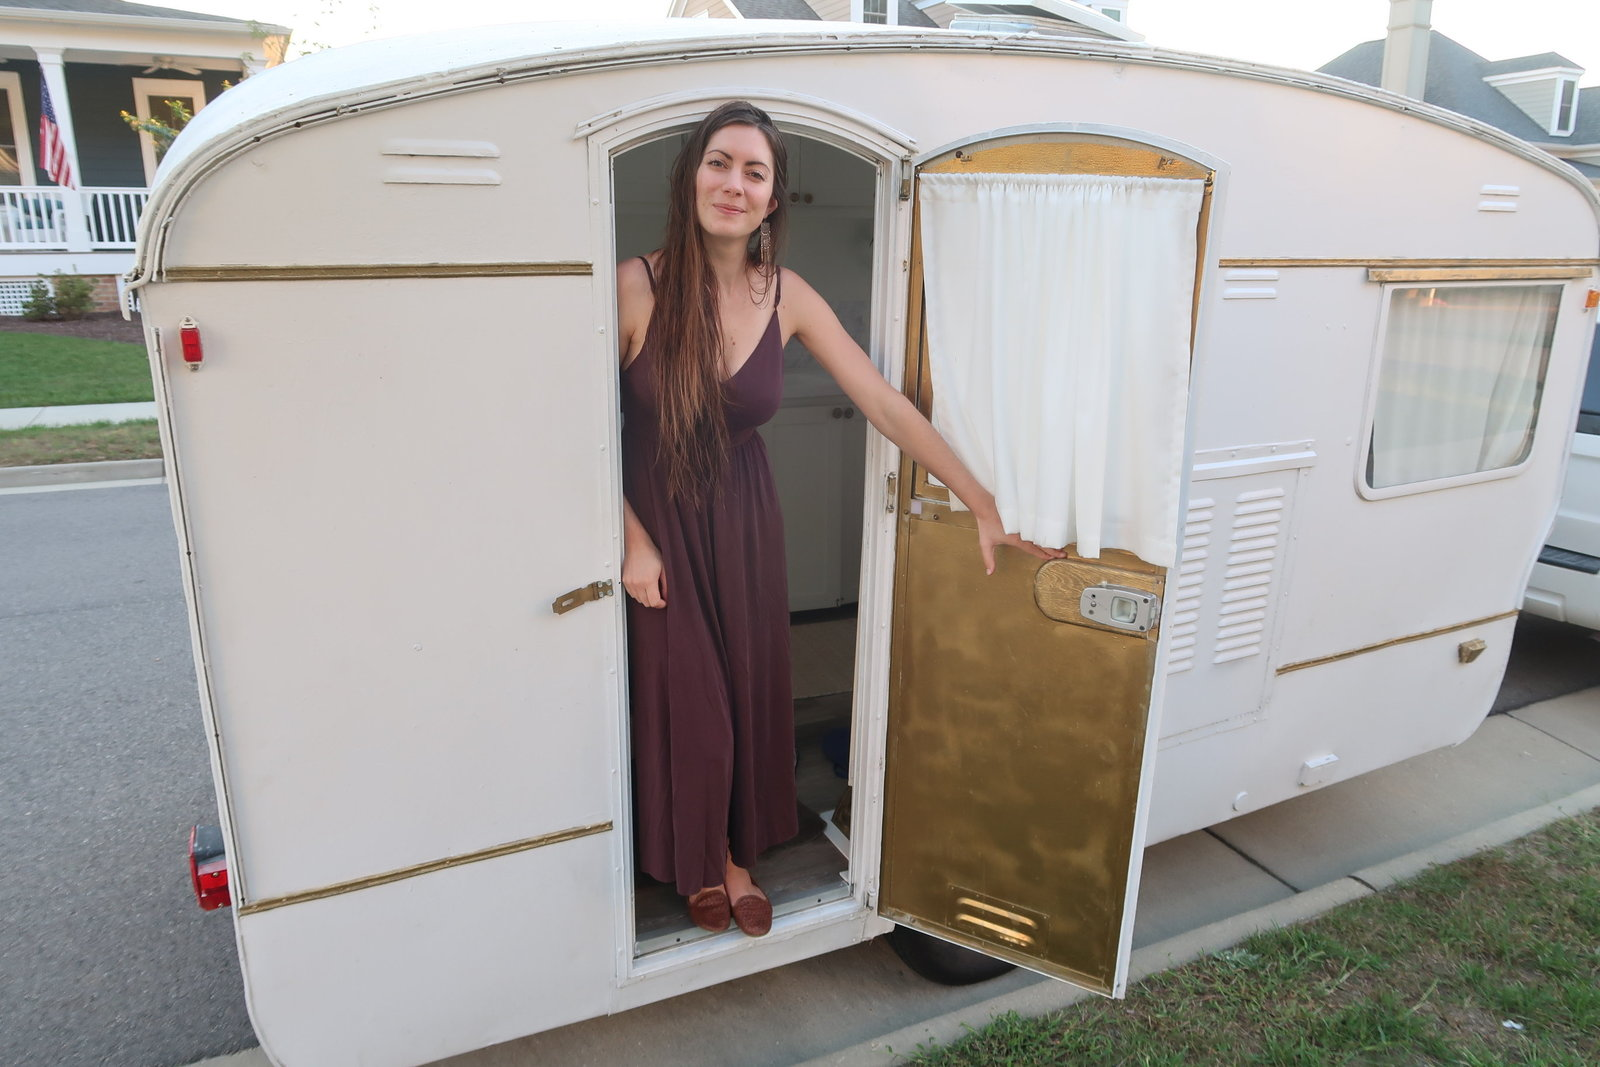 vintage-camper-classic-white-gold-reno-inspirations-ideas-boho-gypsy-hippy-pearl-musician-singer-songwriter-interior1